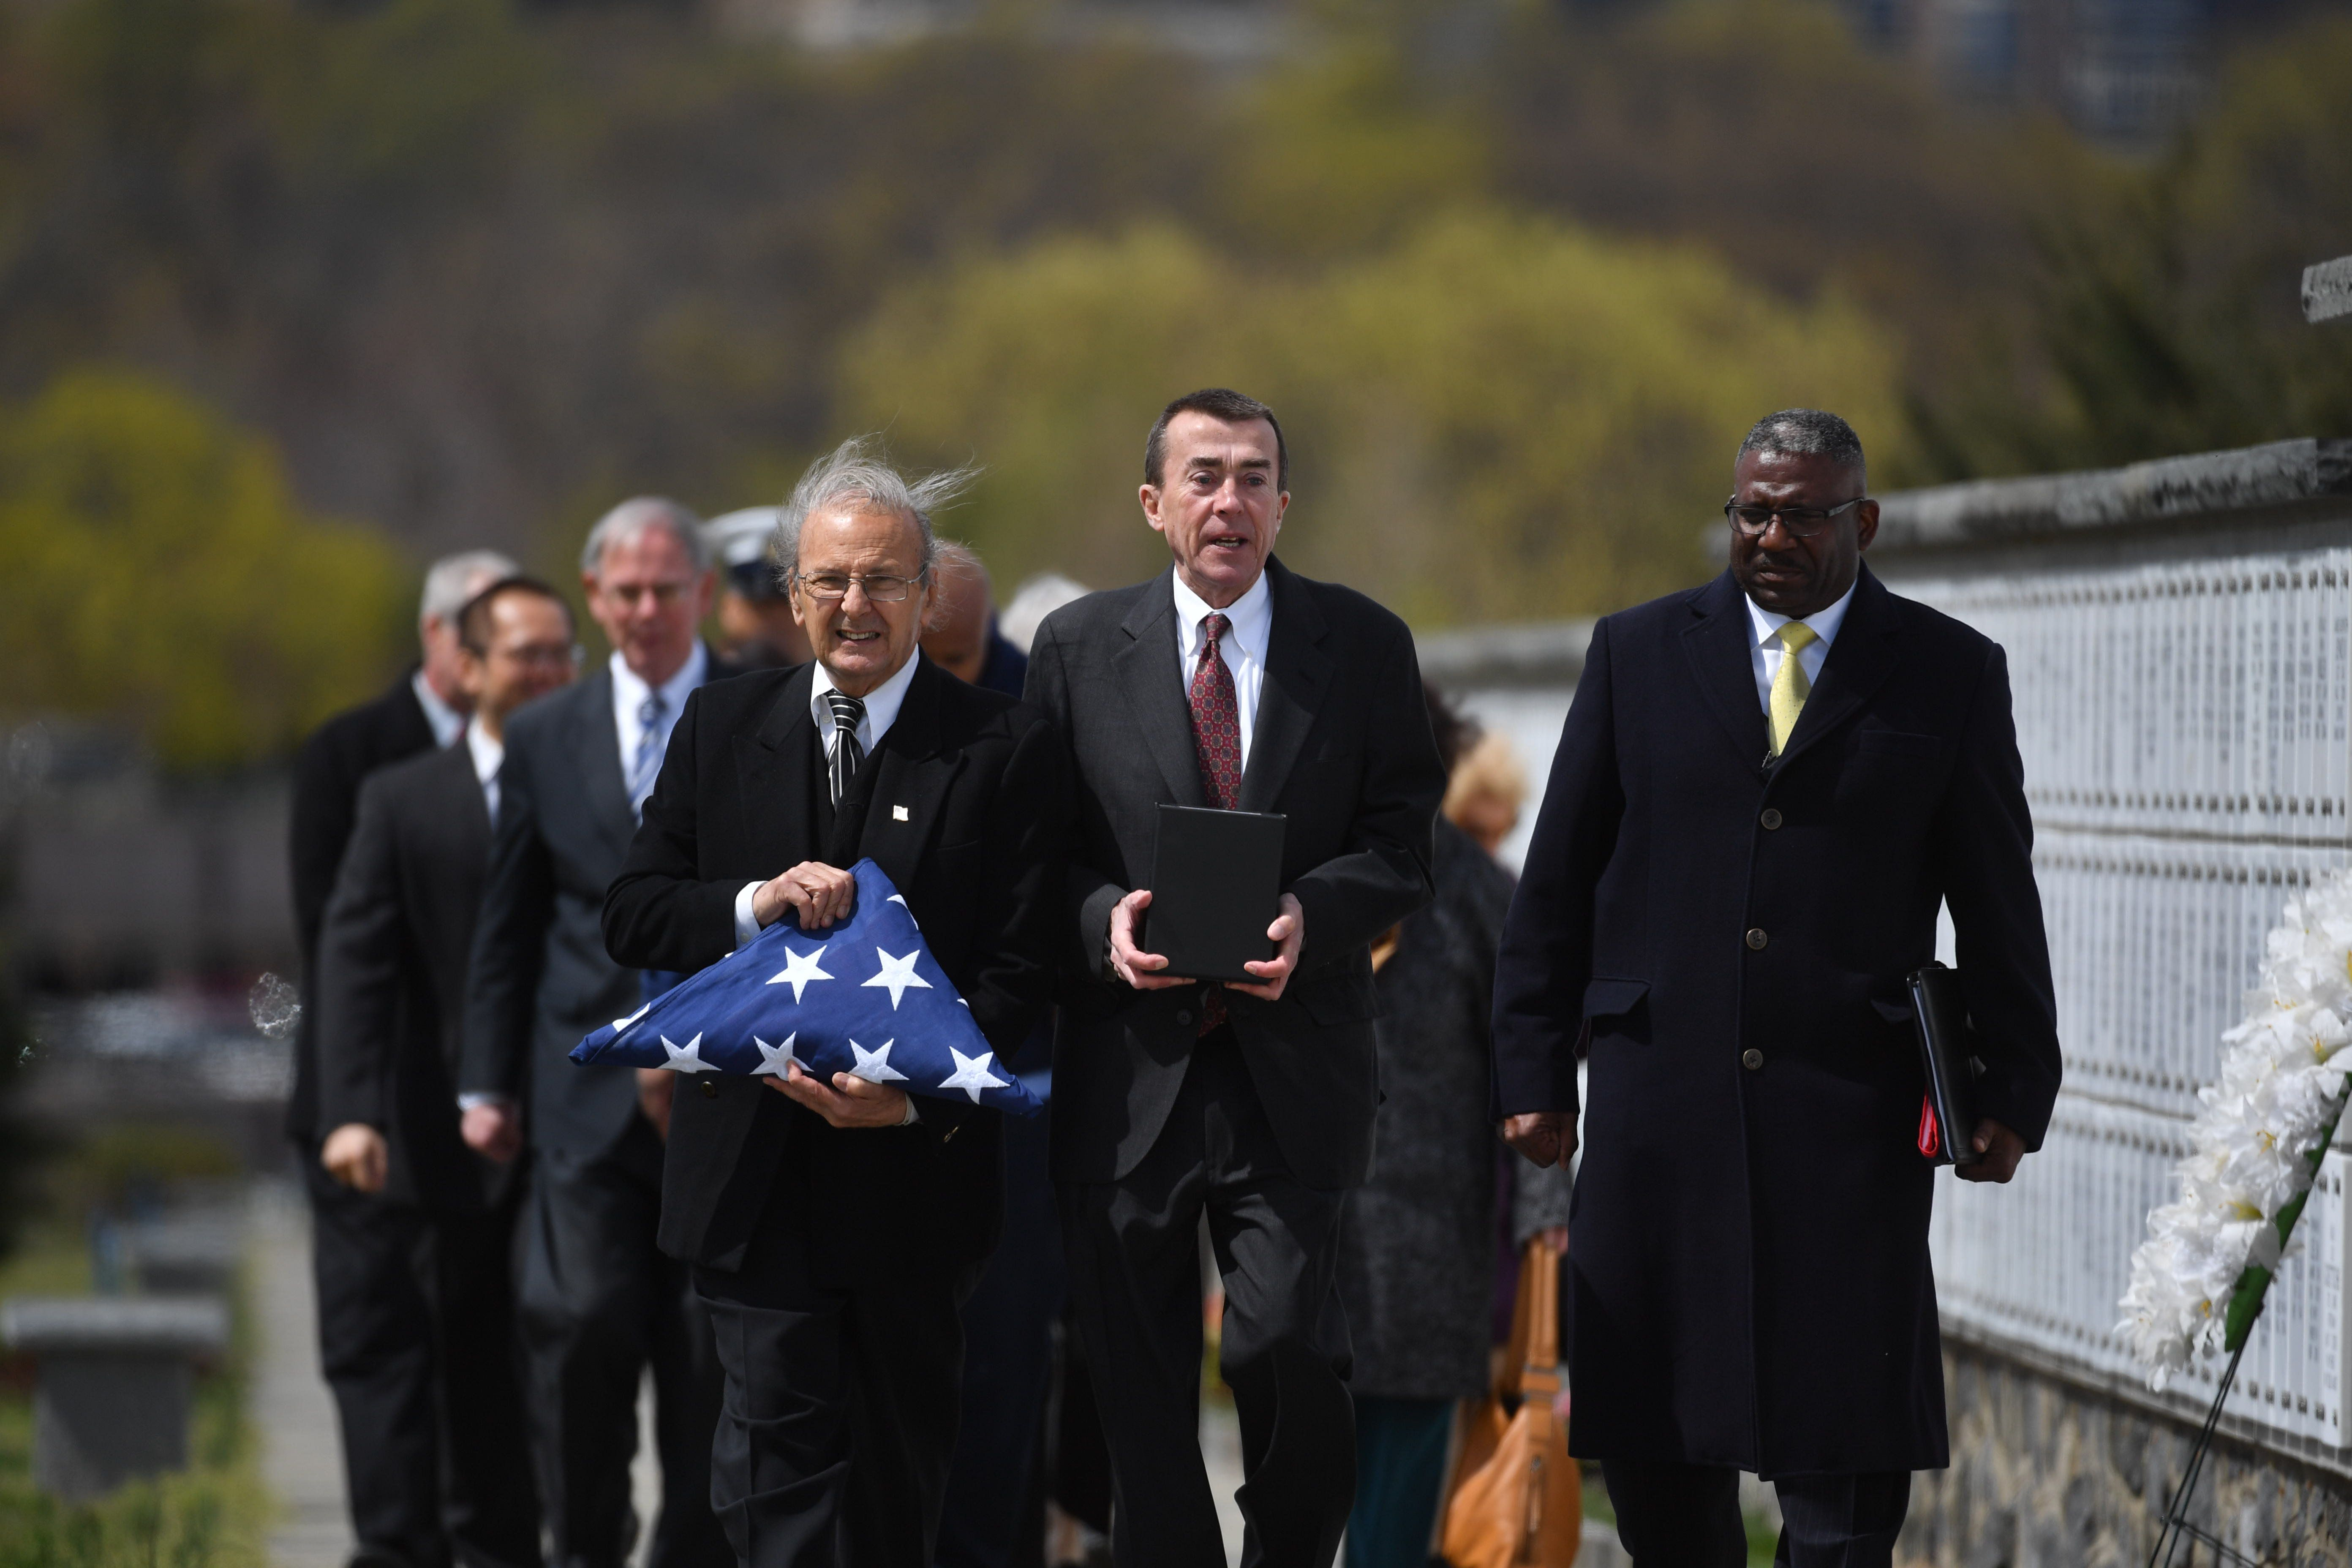 ARLINGTON, VA- APRIL 08: Nick Addams (left)  and and Bill Sheppard (center) attend the  memorial service for World War 2 veteran Andrew Moore at Arlington National Cemetery in Arlington, Virginia on April 08, 2016. ALSO PICTURED, Charles Moore, Arlington National Cemetery Representative (right)  World War II veteran Andrew Moore died alone in December and his neighbors banded together to get him placed at Arlington National Cemetery. Andrew Moore died at 89 in December was destined for a paupers grave. He grew up in an orphanage, never married and outlived his friends. But a couple of his neighbors in the State apartment building, where Moore lived for 40 years, wanted something better for him, so they worked the bureacracy and raised the money to have Moore's ashes placed at Arlington National Cemetery with a rifle salute. (Photo by Marvin Joseph/The Washington Post via Getty Images)